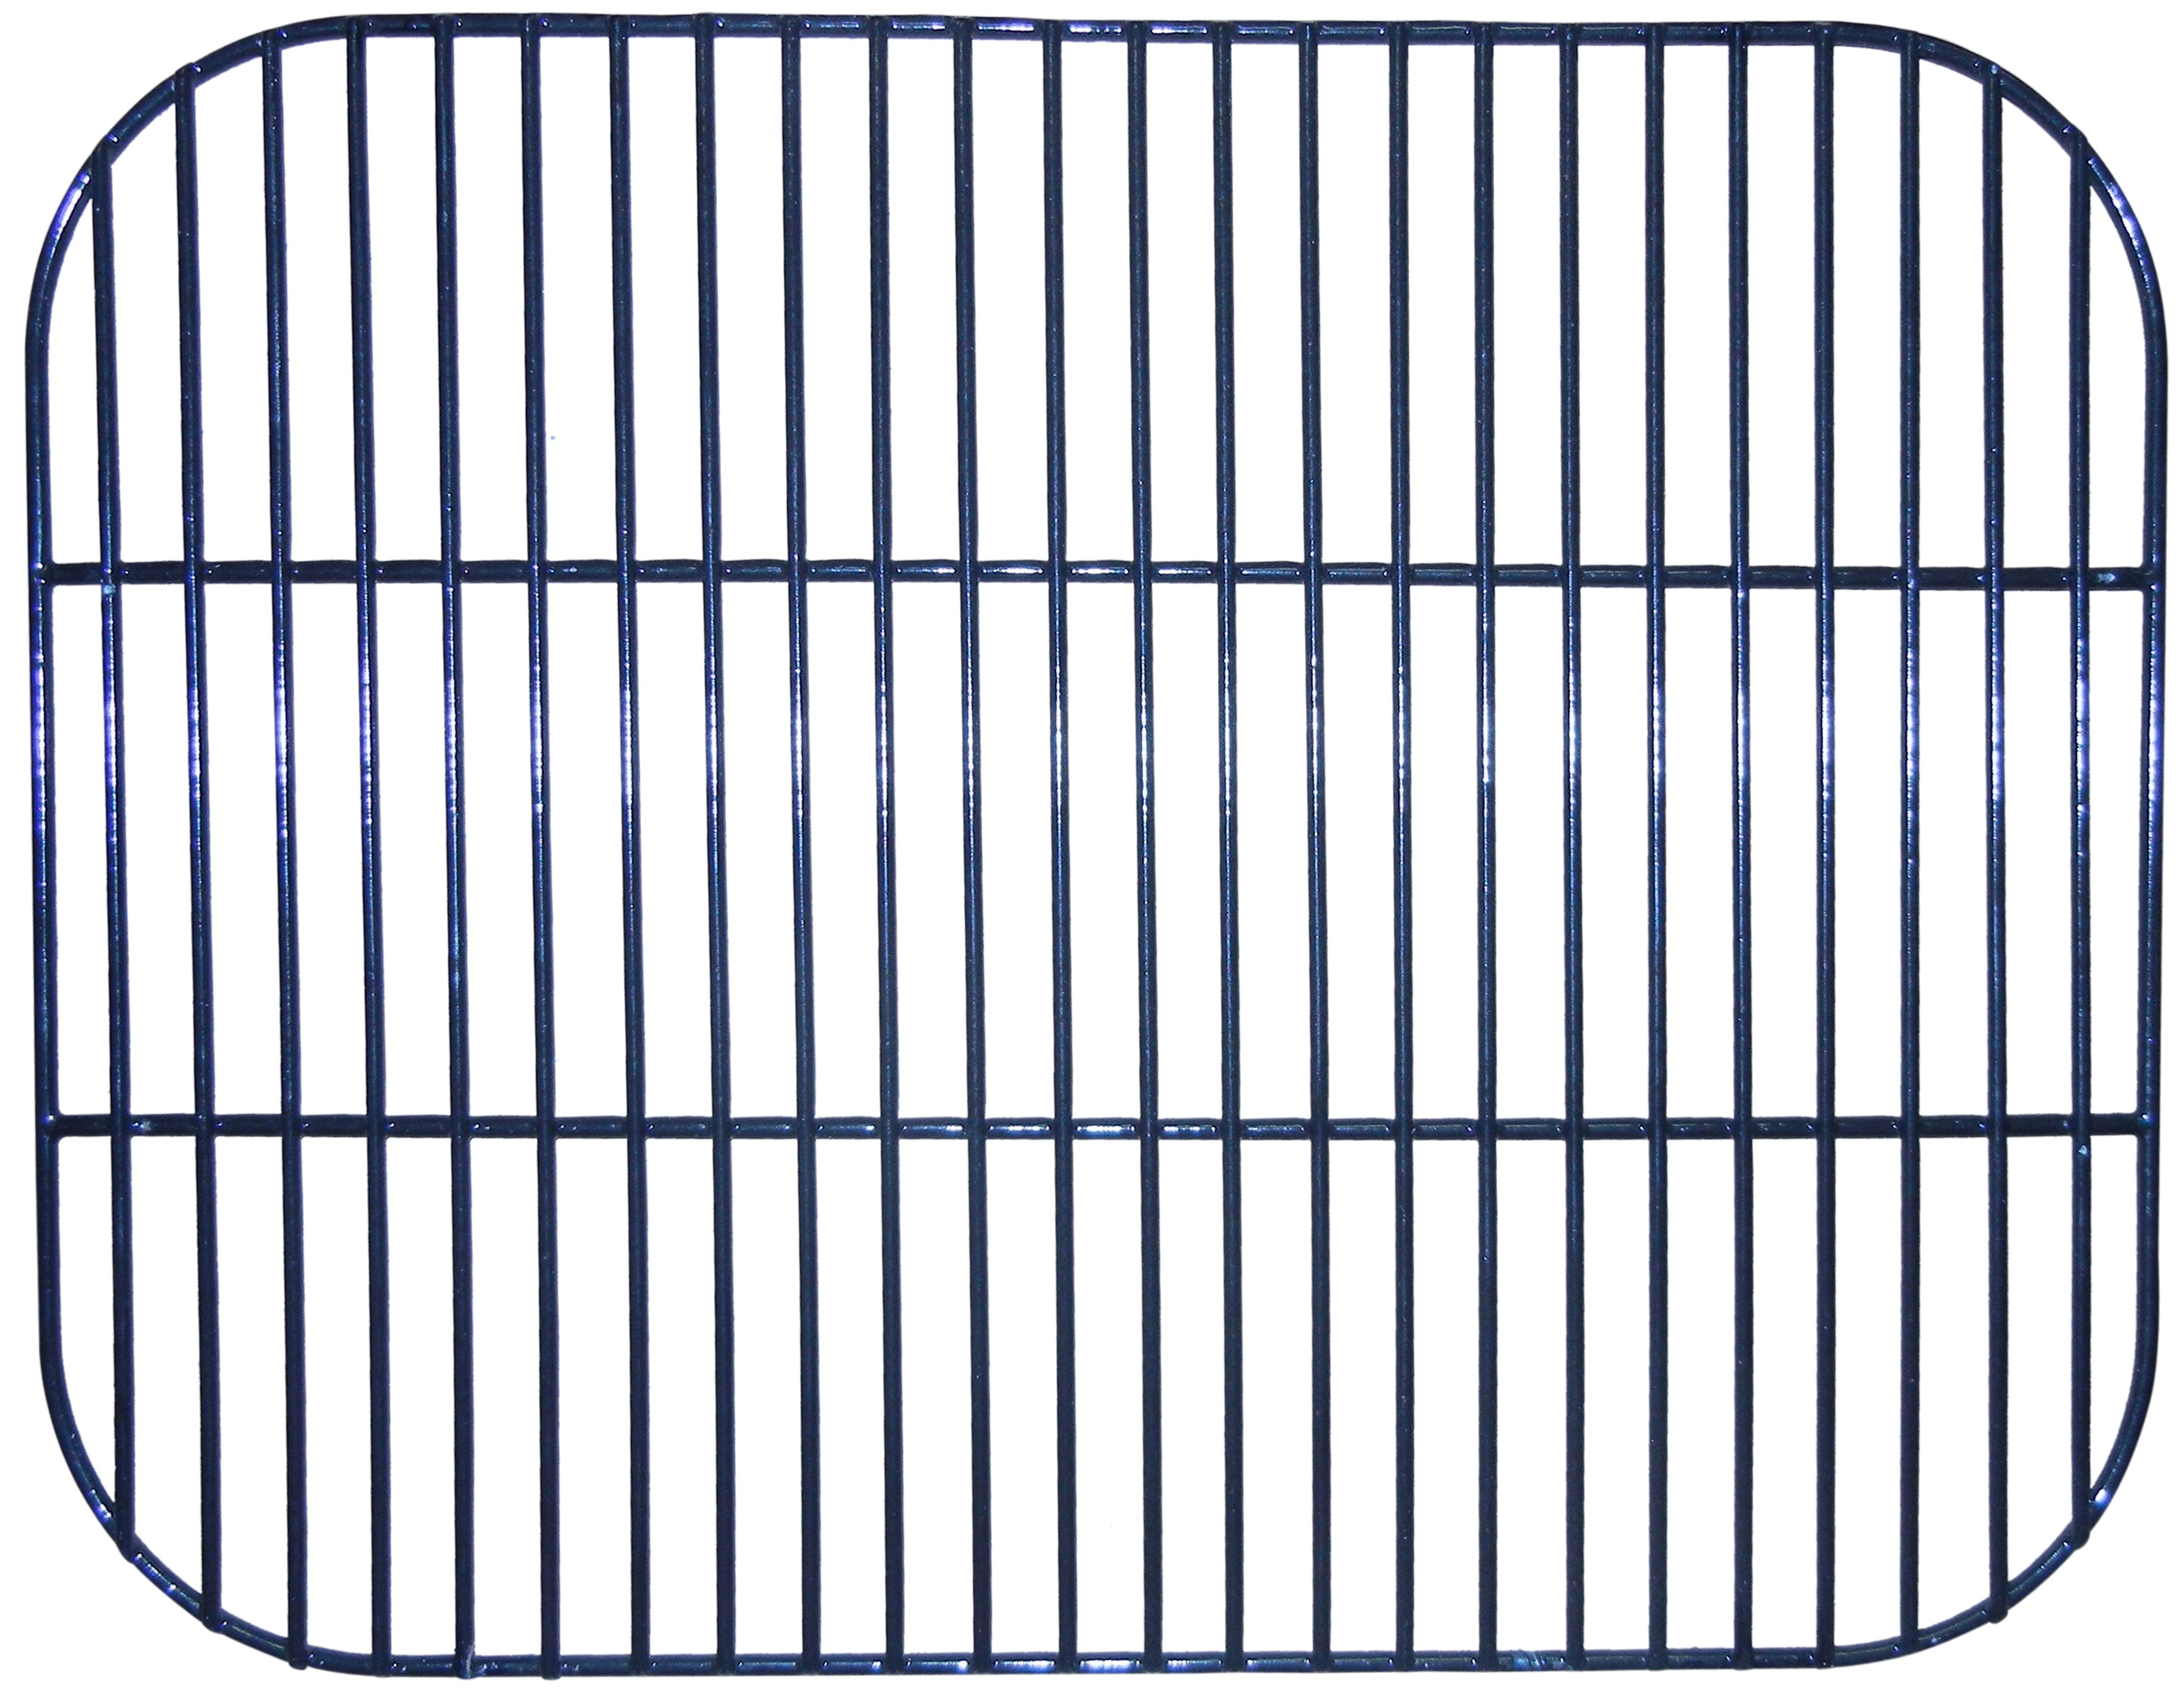 Porcelain Steel Wire Cooking Grid For Brinkmann Grill